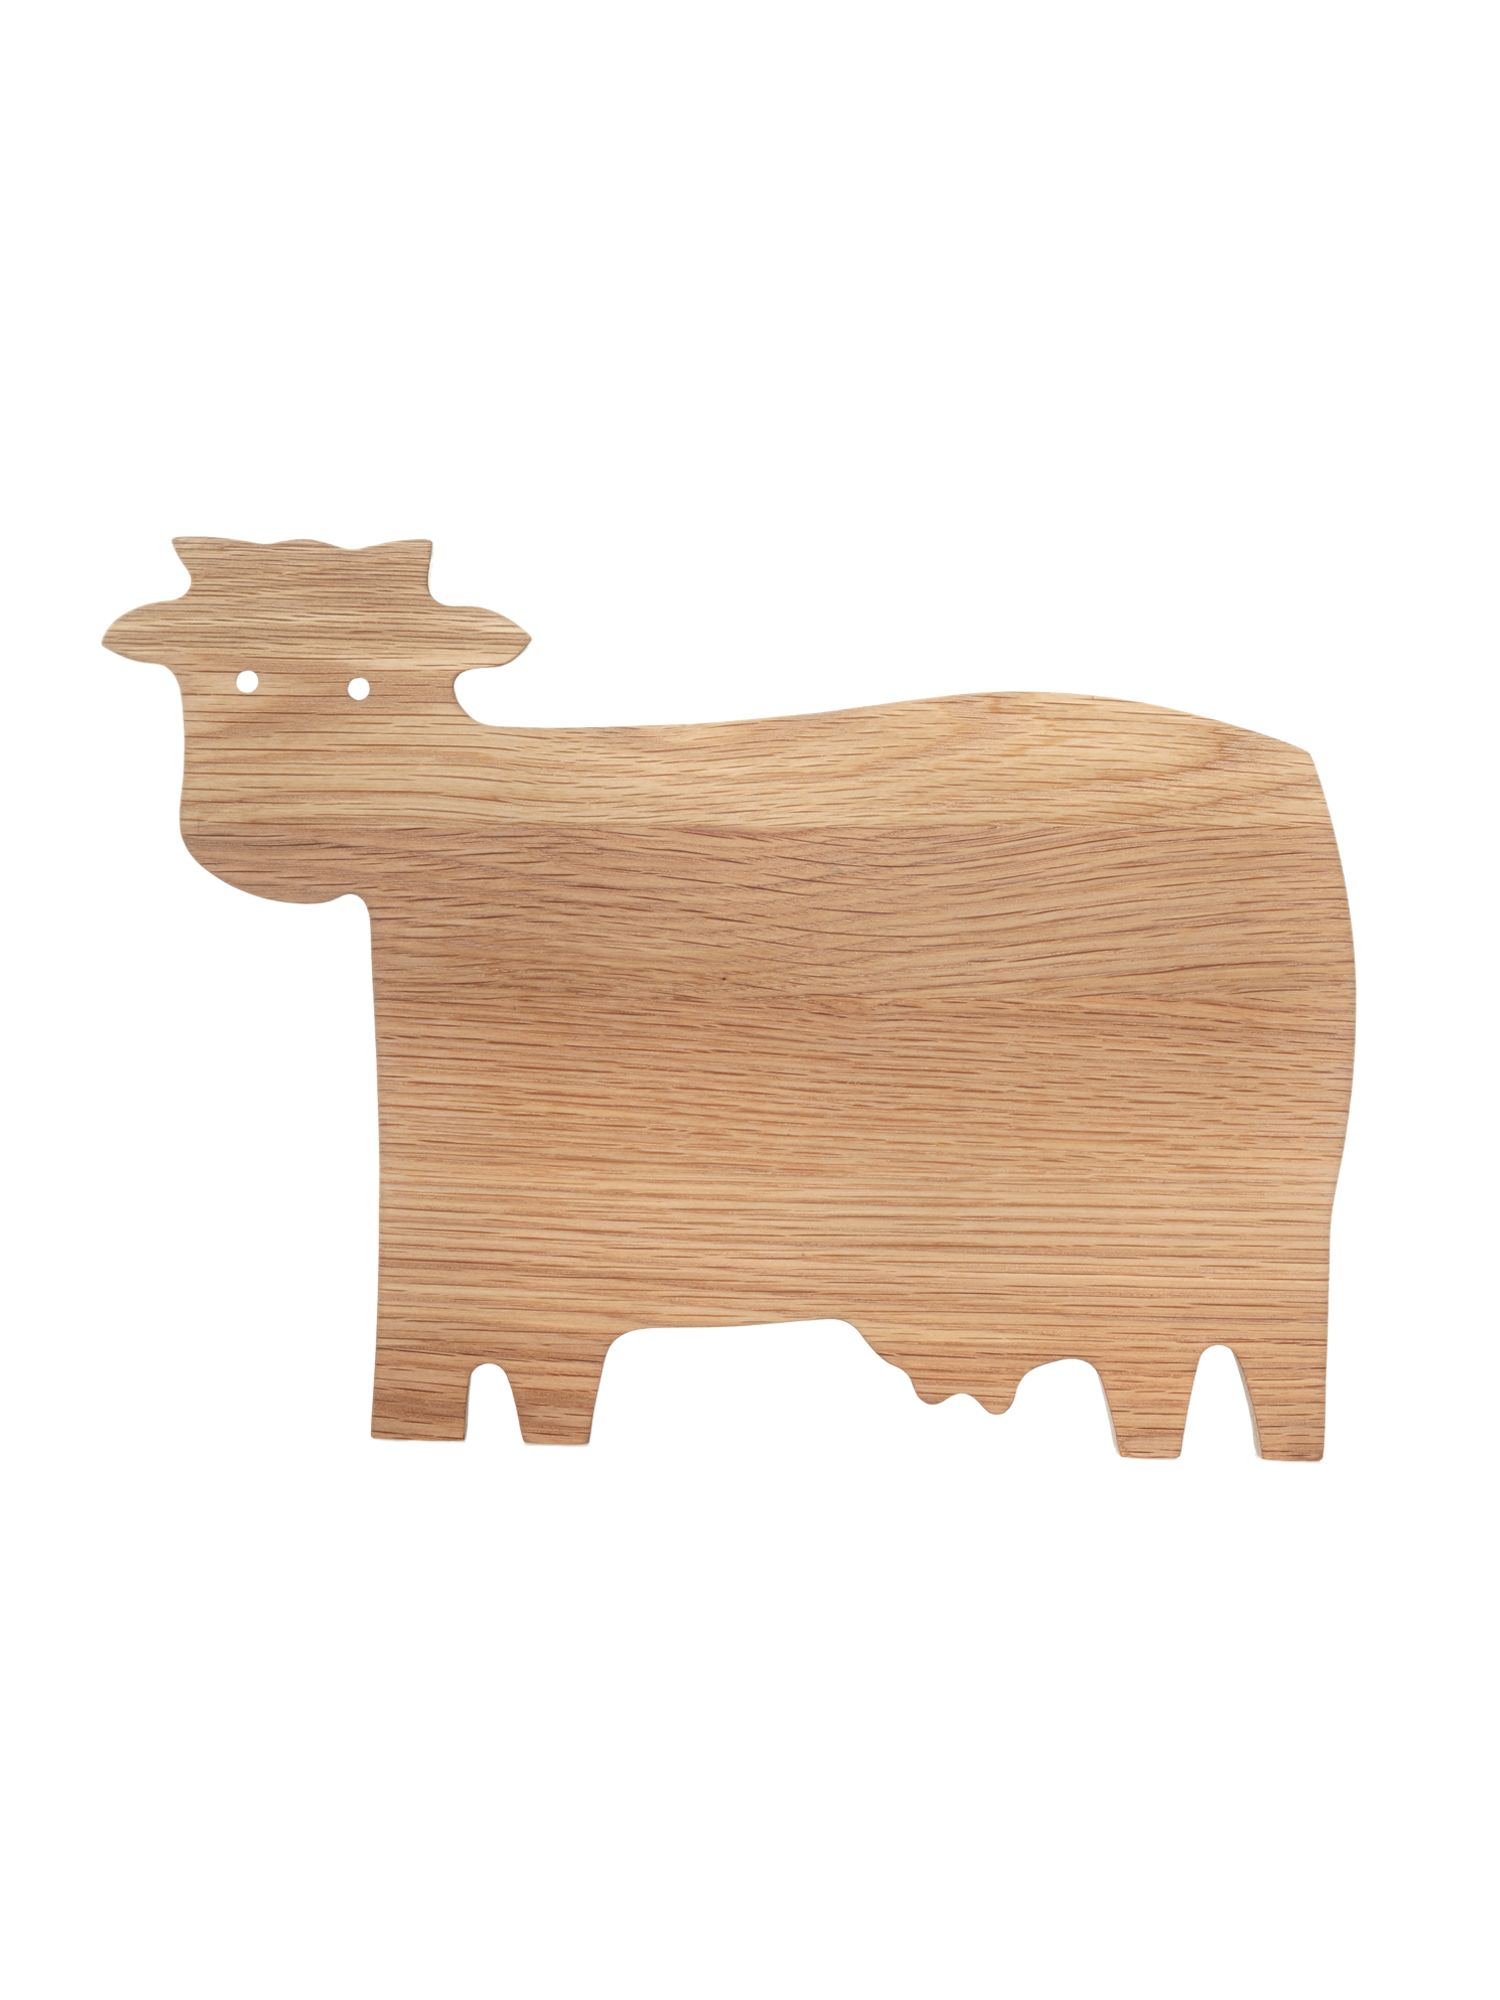 Oak cow animal chopping board